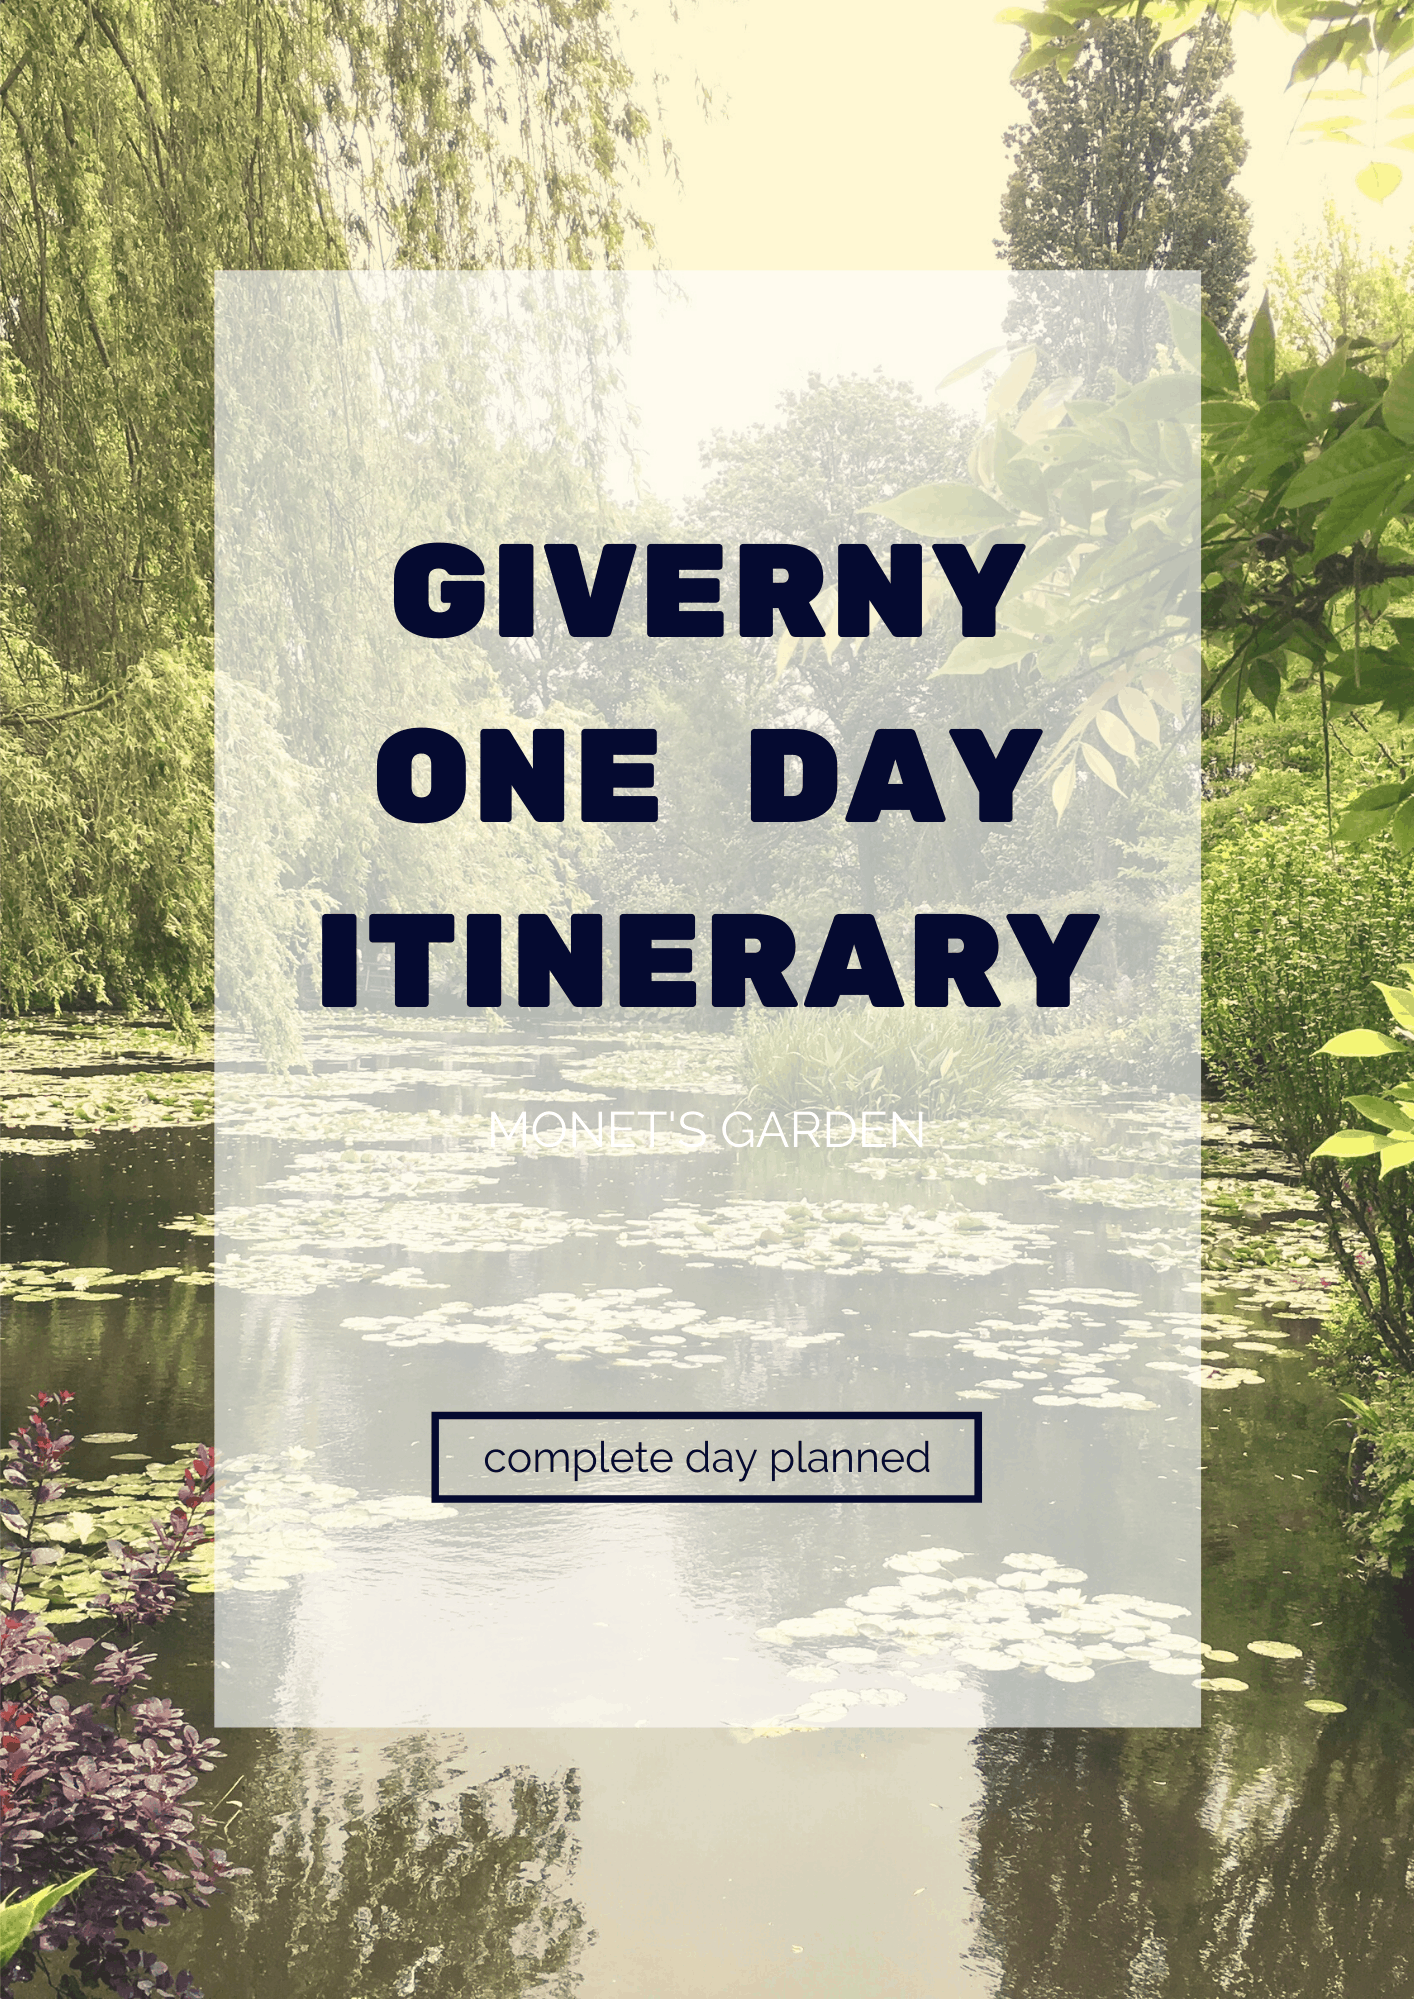 Giverny (Monet's Gardens) One Day Itinerary 2019